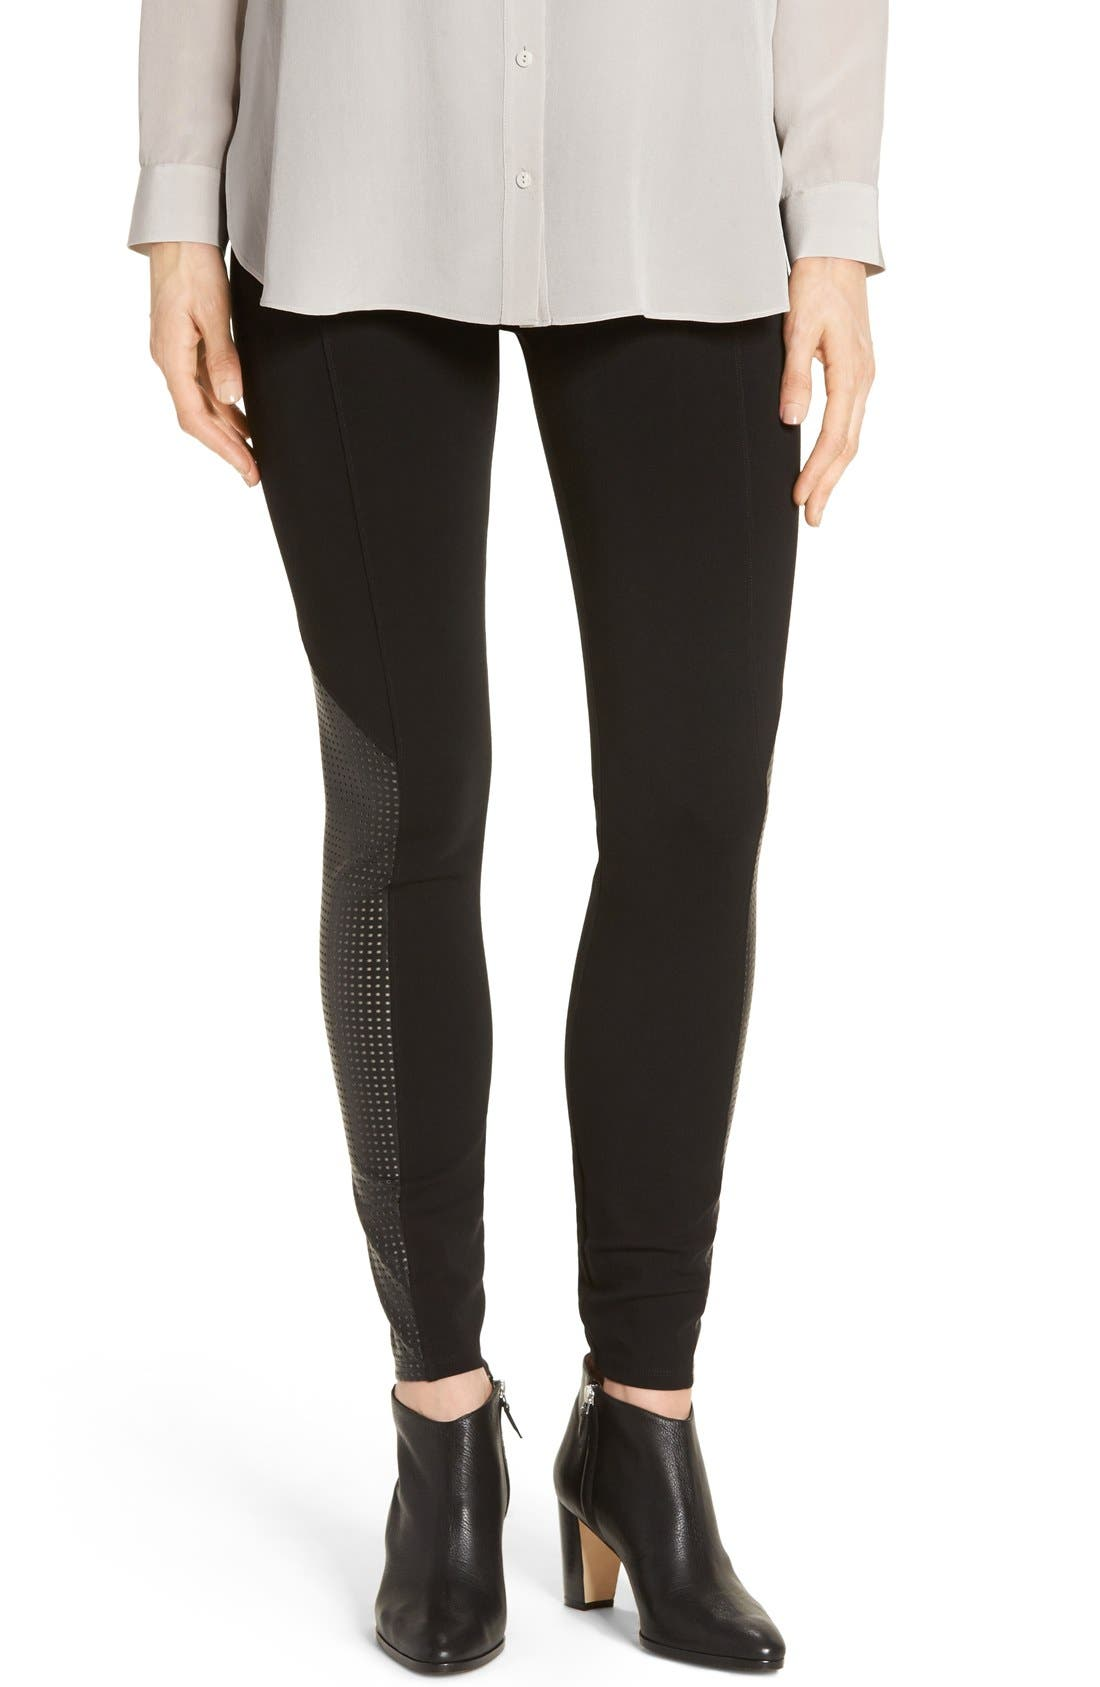 Alternate Image 1 Selected - SPANX® High Waist Perforated Panel Leggings